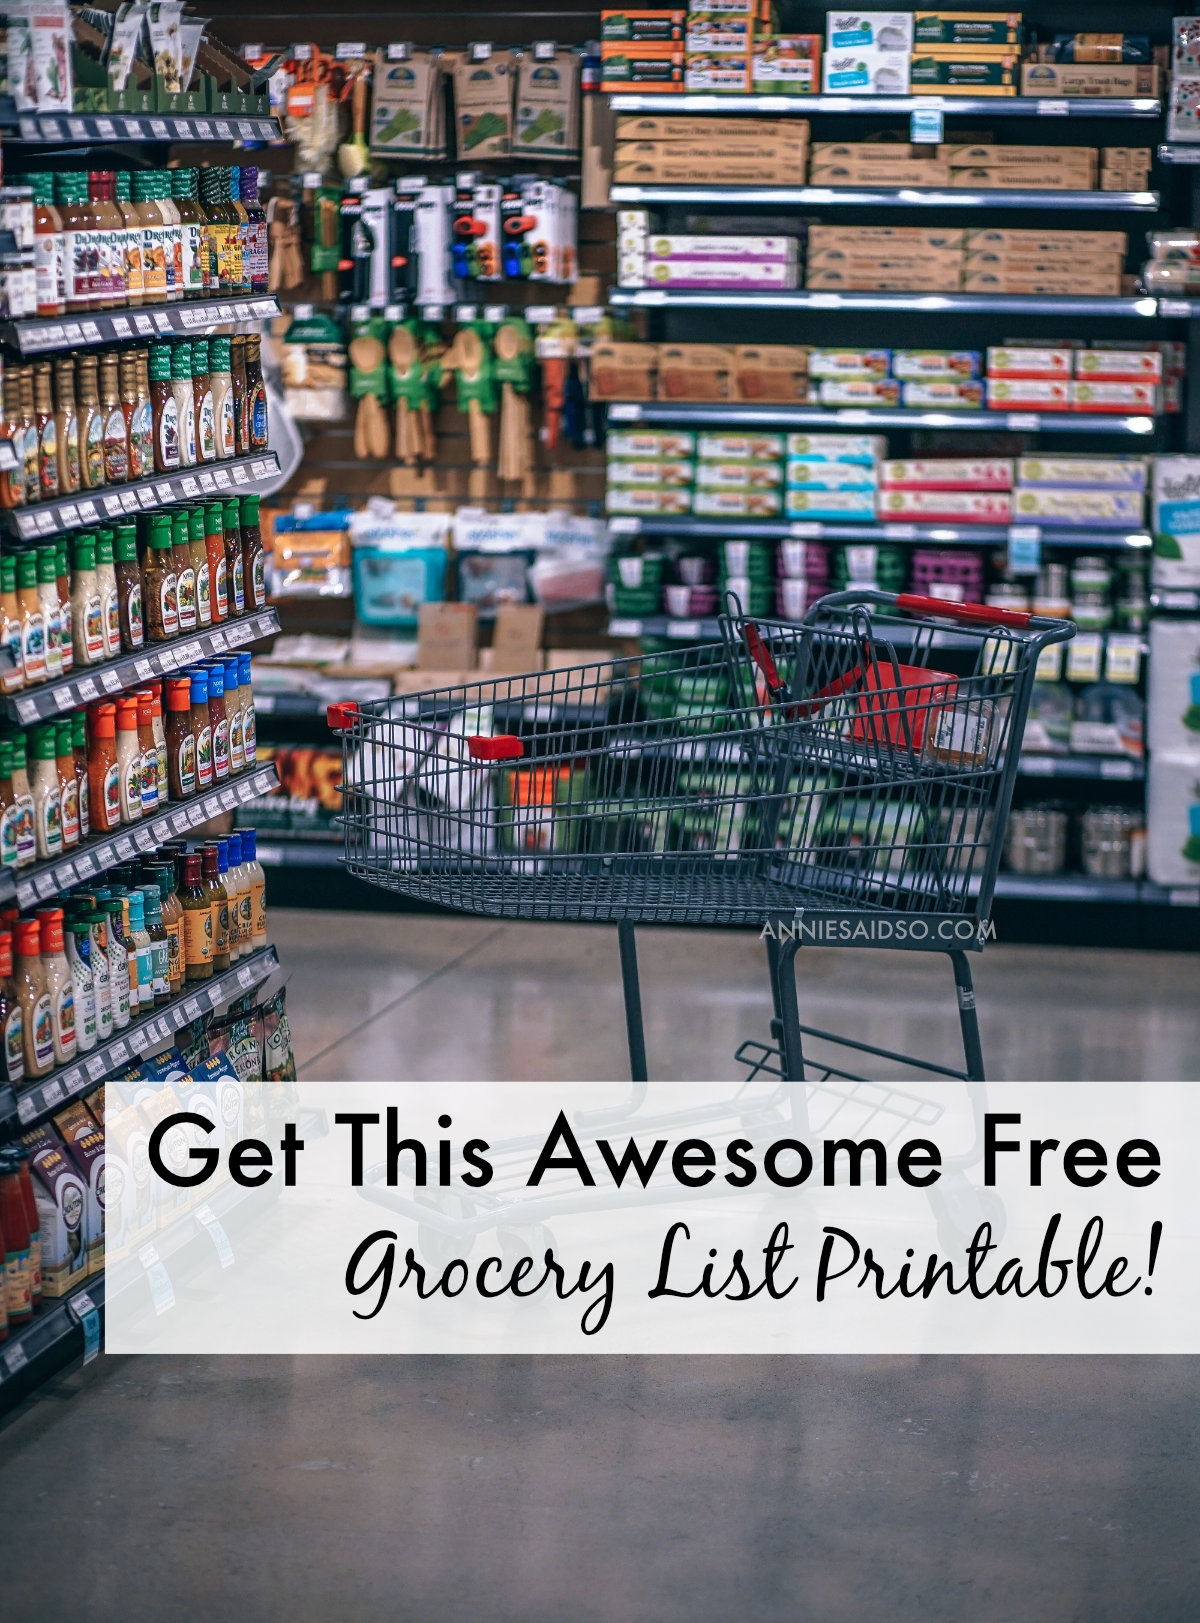 Get This Free Printable Grocery List!